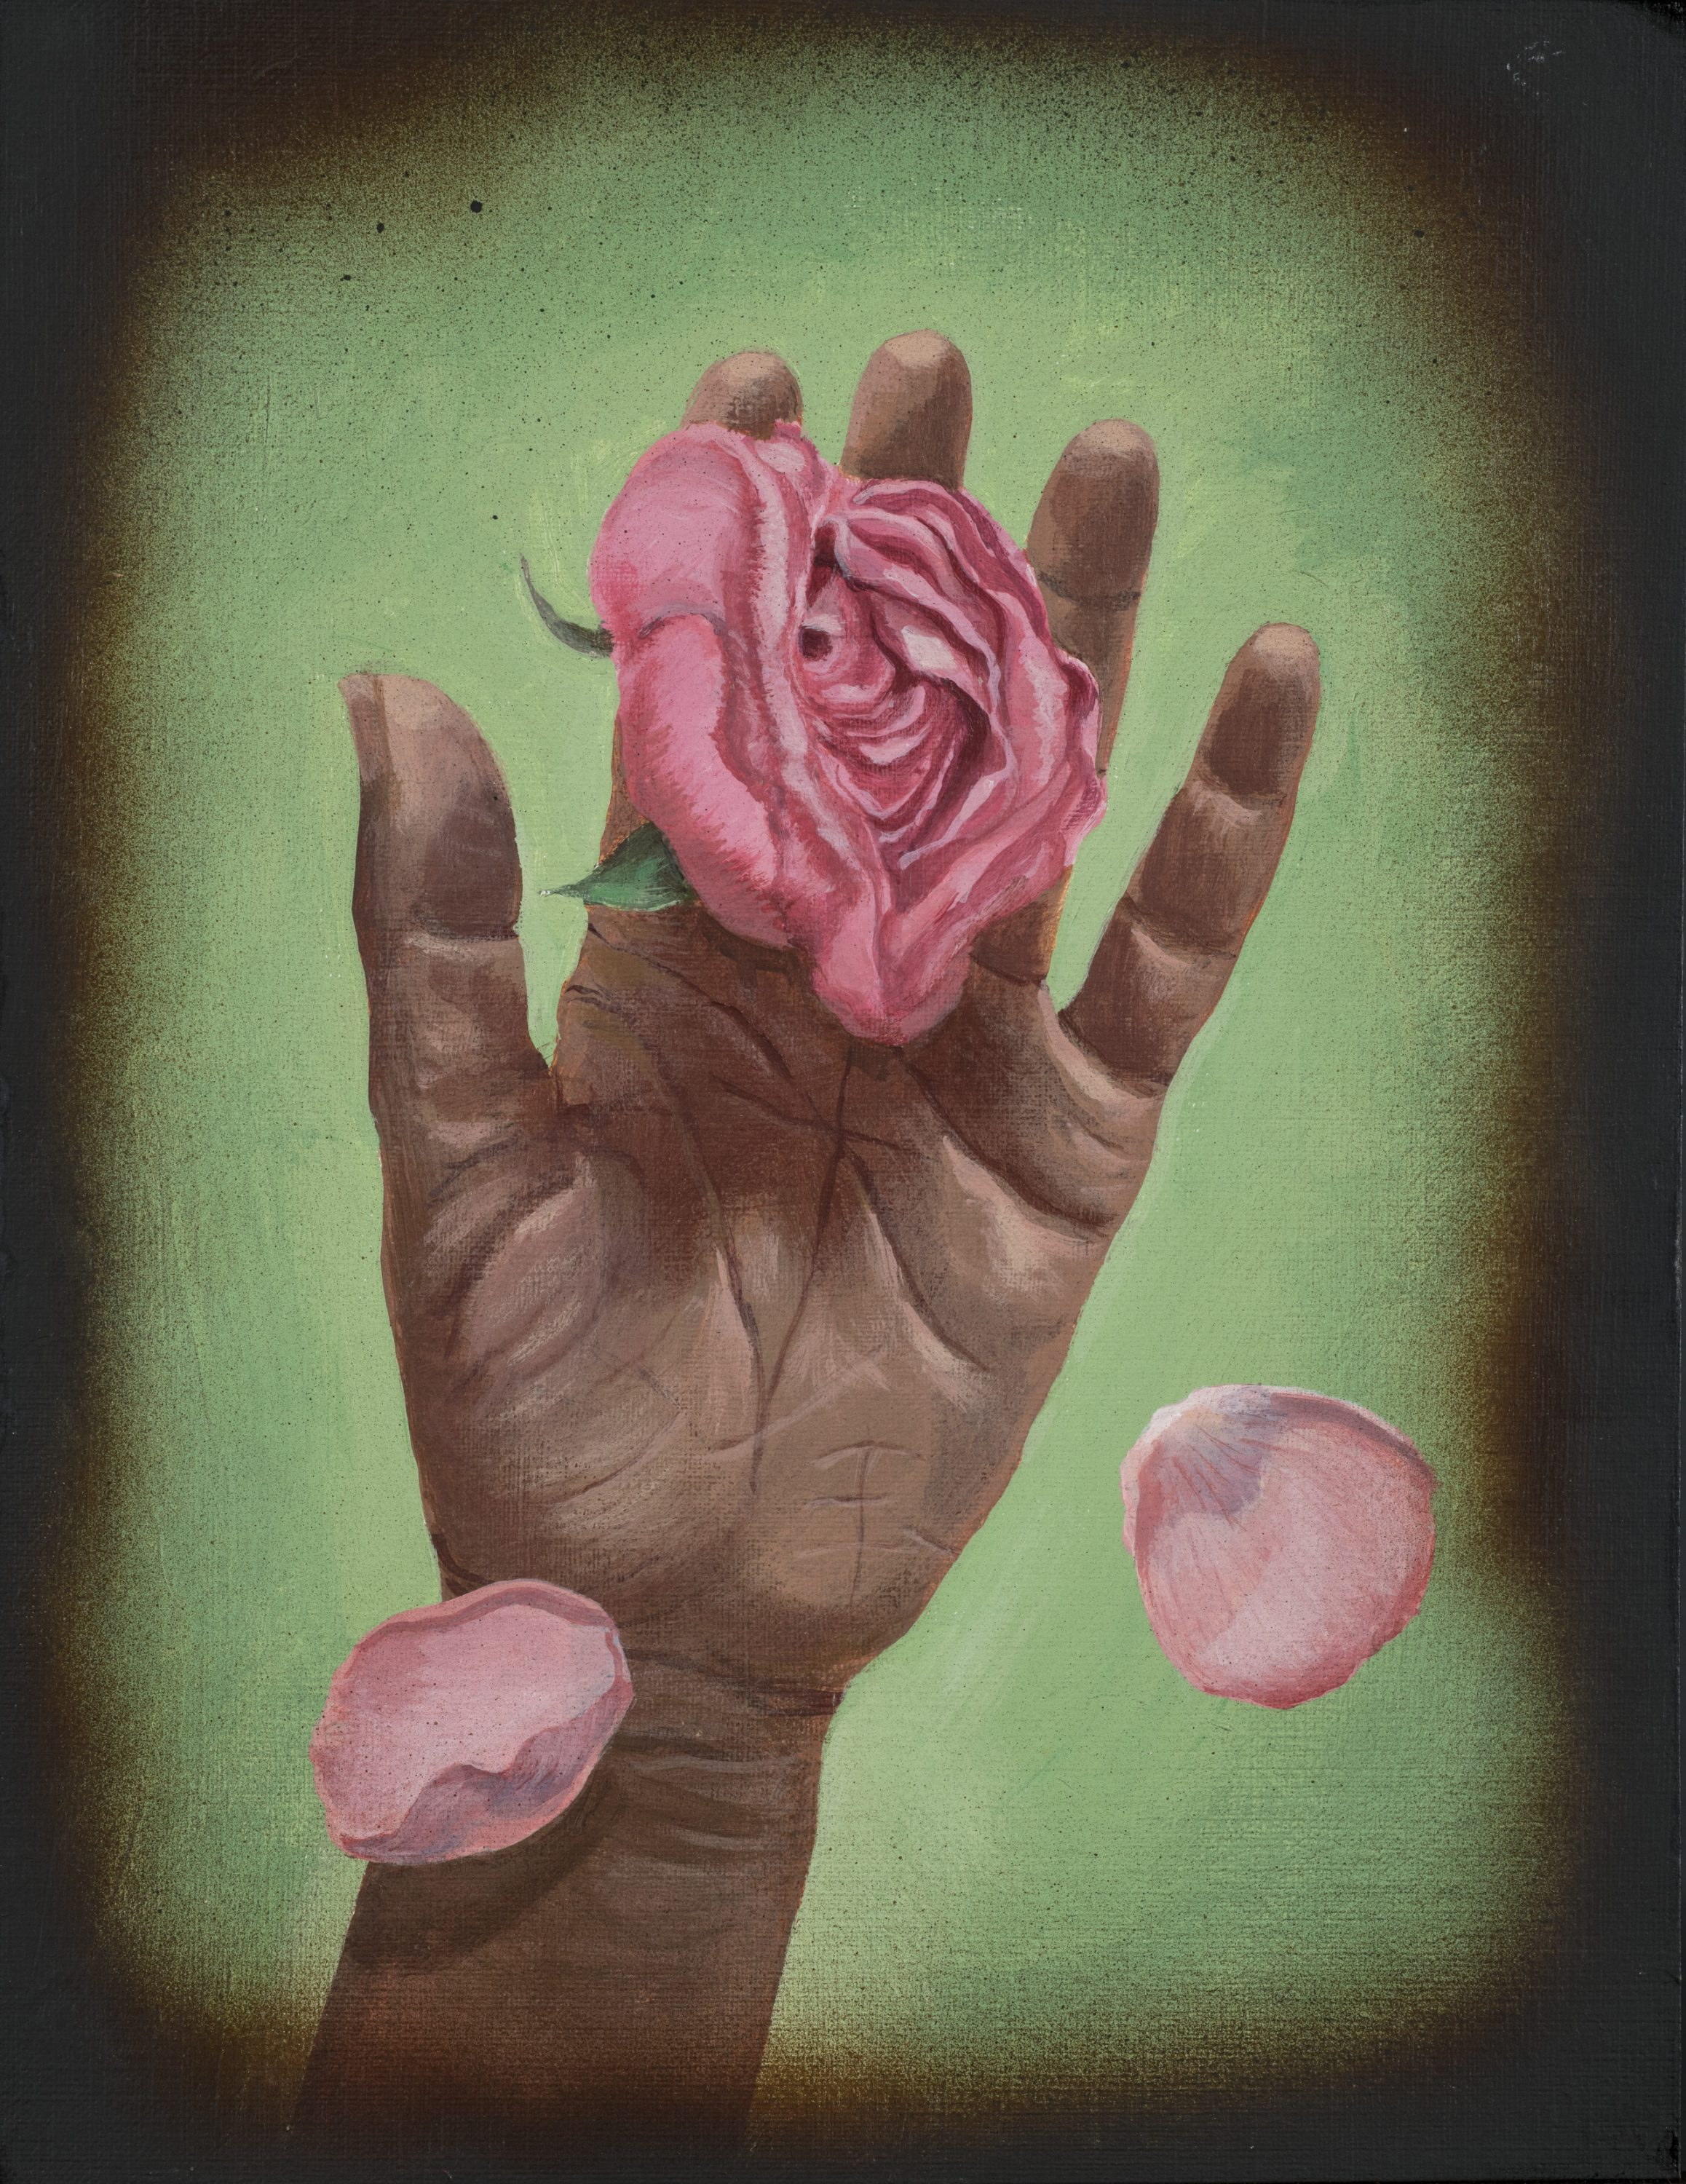 A realistic painting of a medium-dark skinned left hand facing palm-up against a light green background that fades to black. Resting on the hand is a pink rose and two full petals are falling from it.